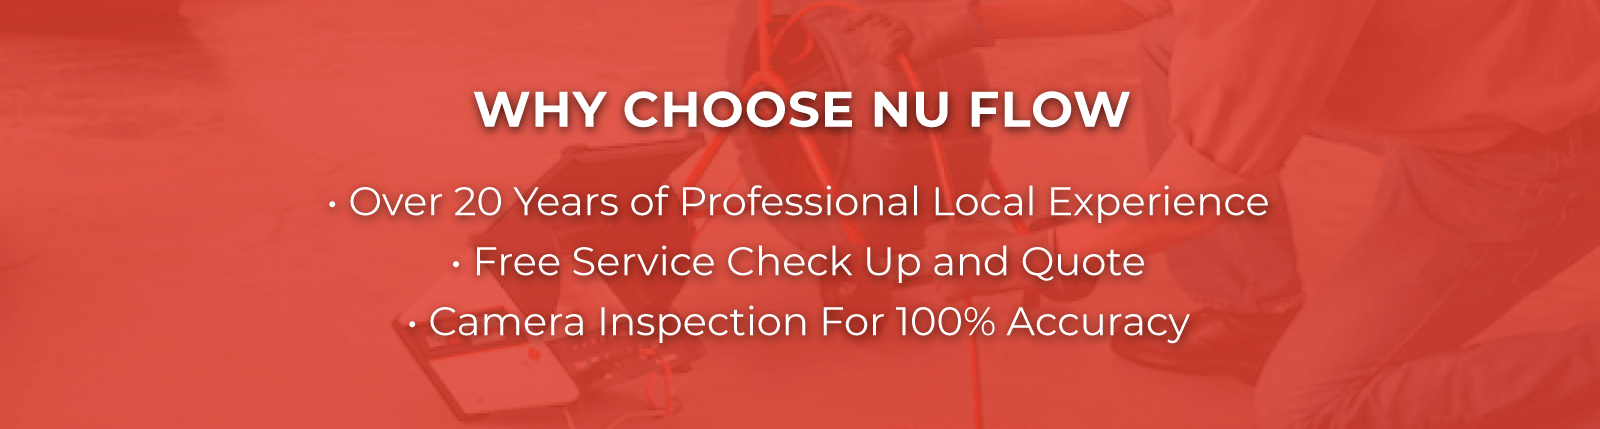 nu flow oklahoma sewer repair 1 Clogged Drain Repair Oklahoma City, OK